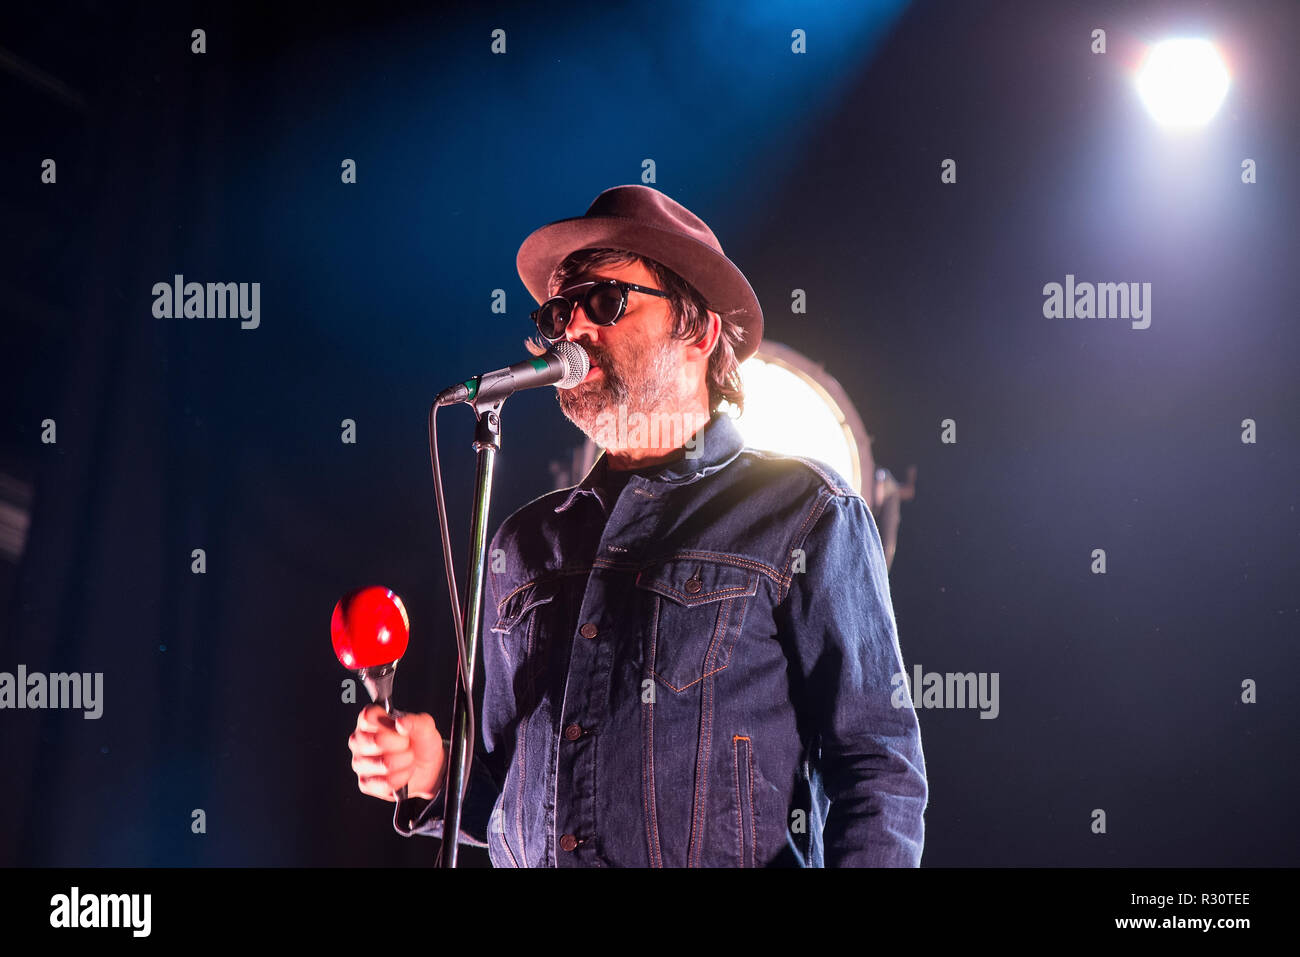 Eels Band High Resolution Stock Photography And Images Alamy